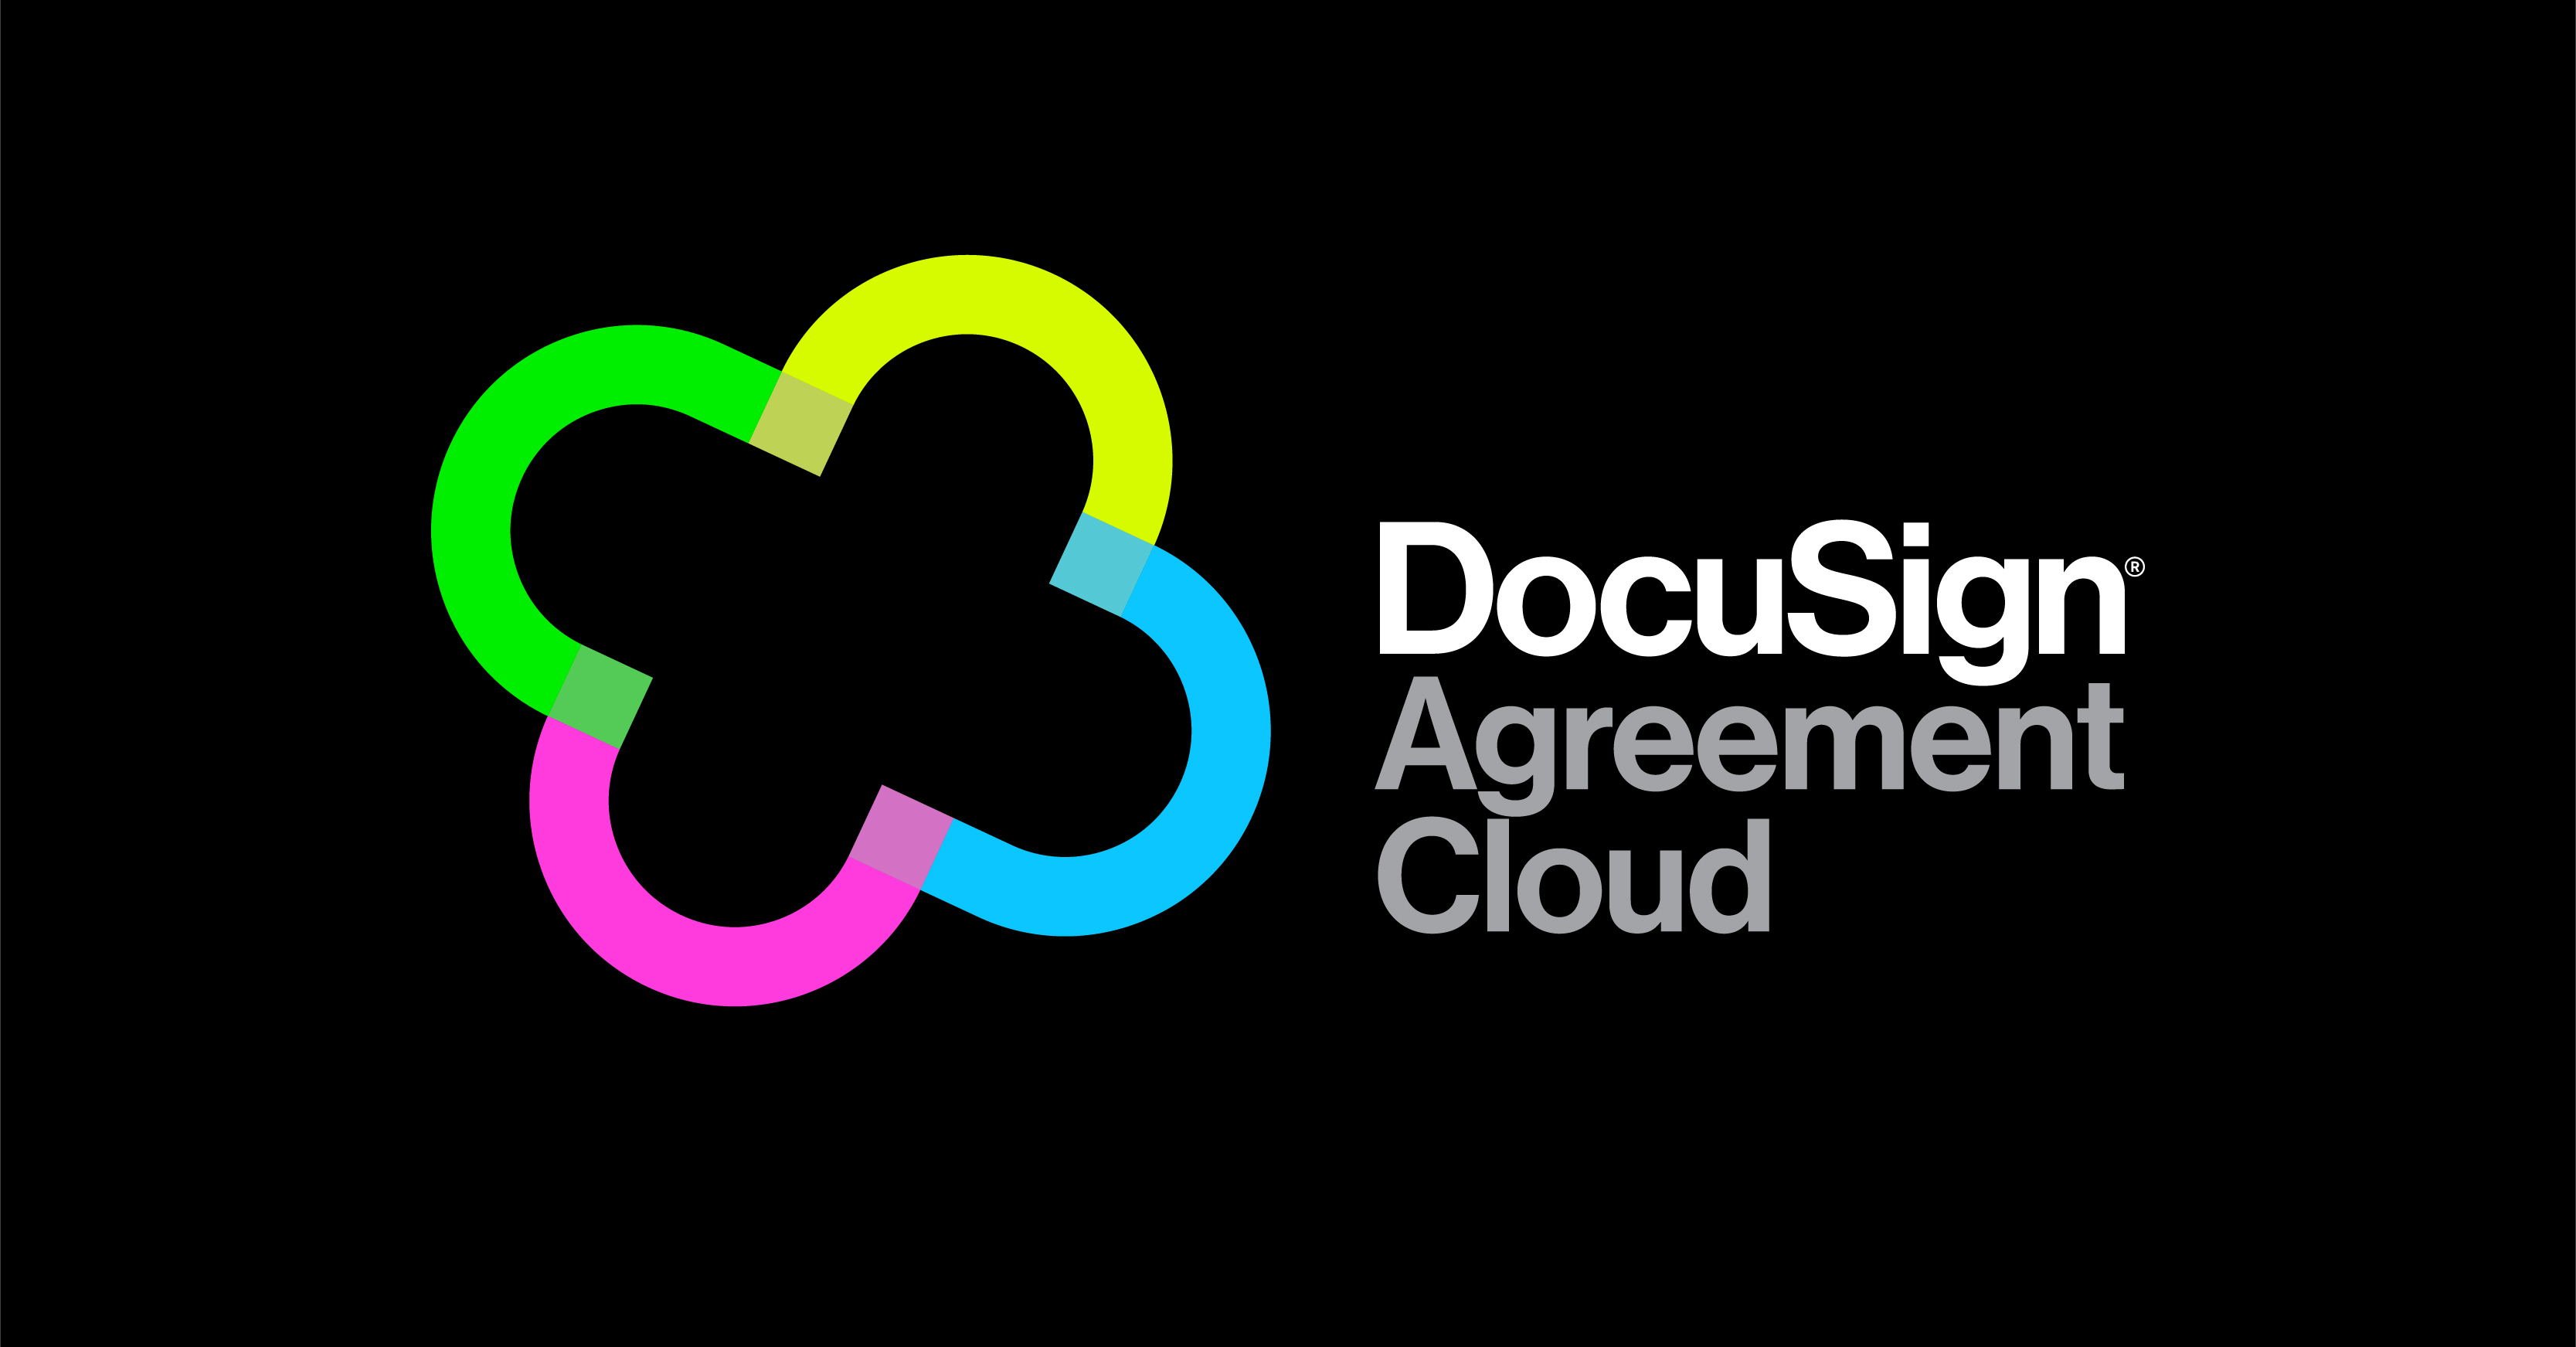 docusign agreement cloud logo